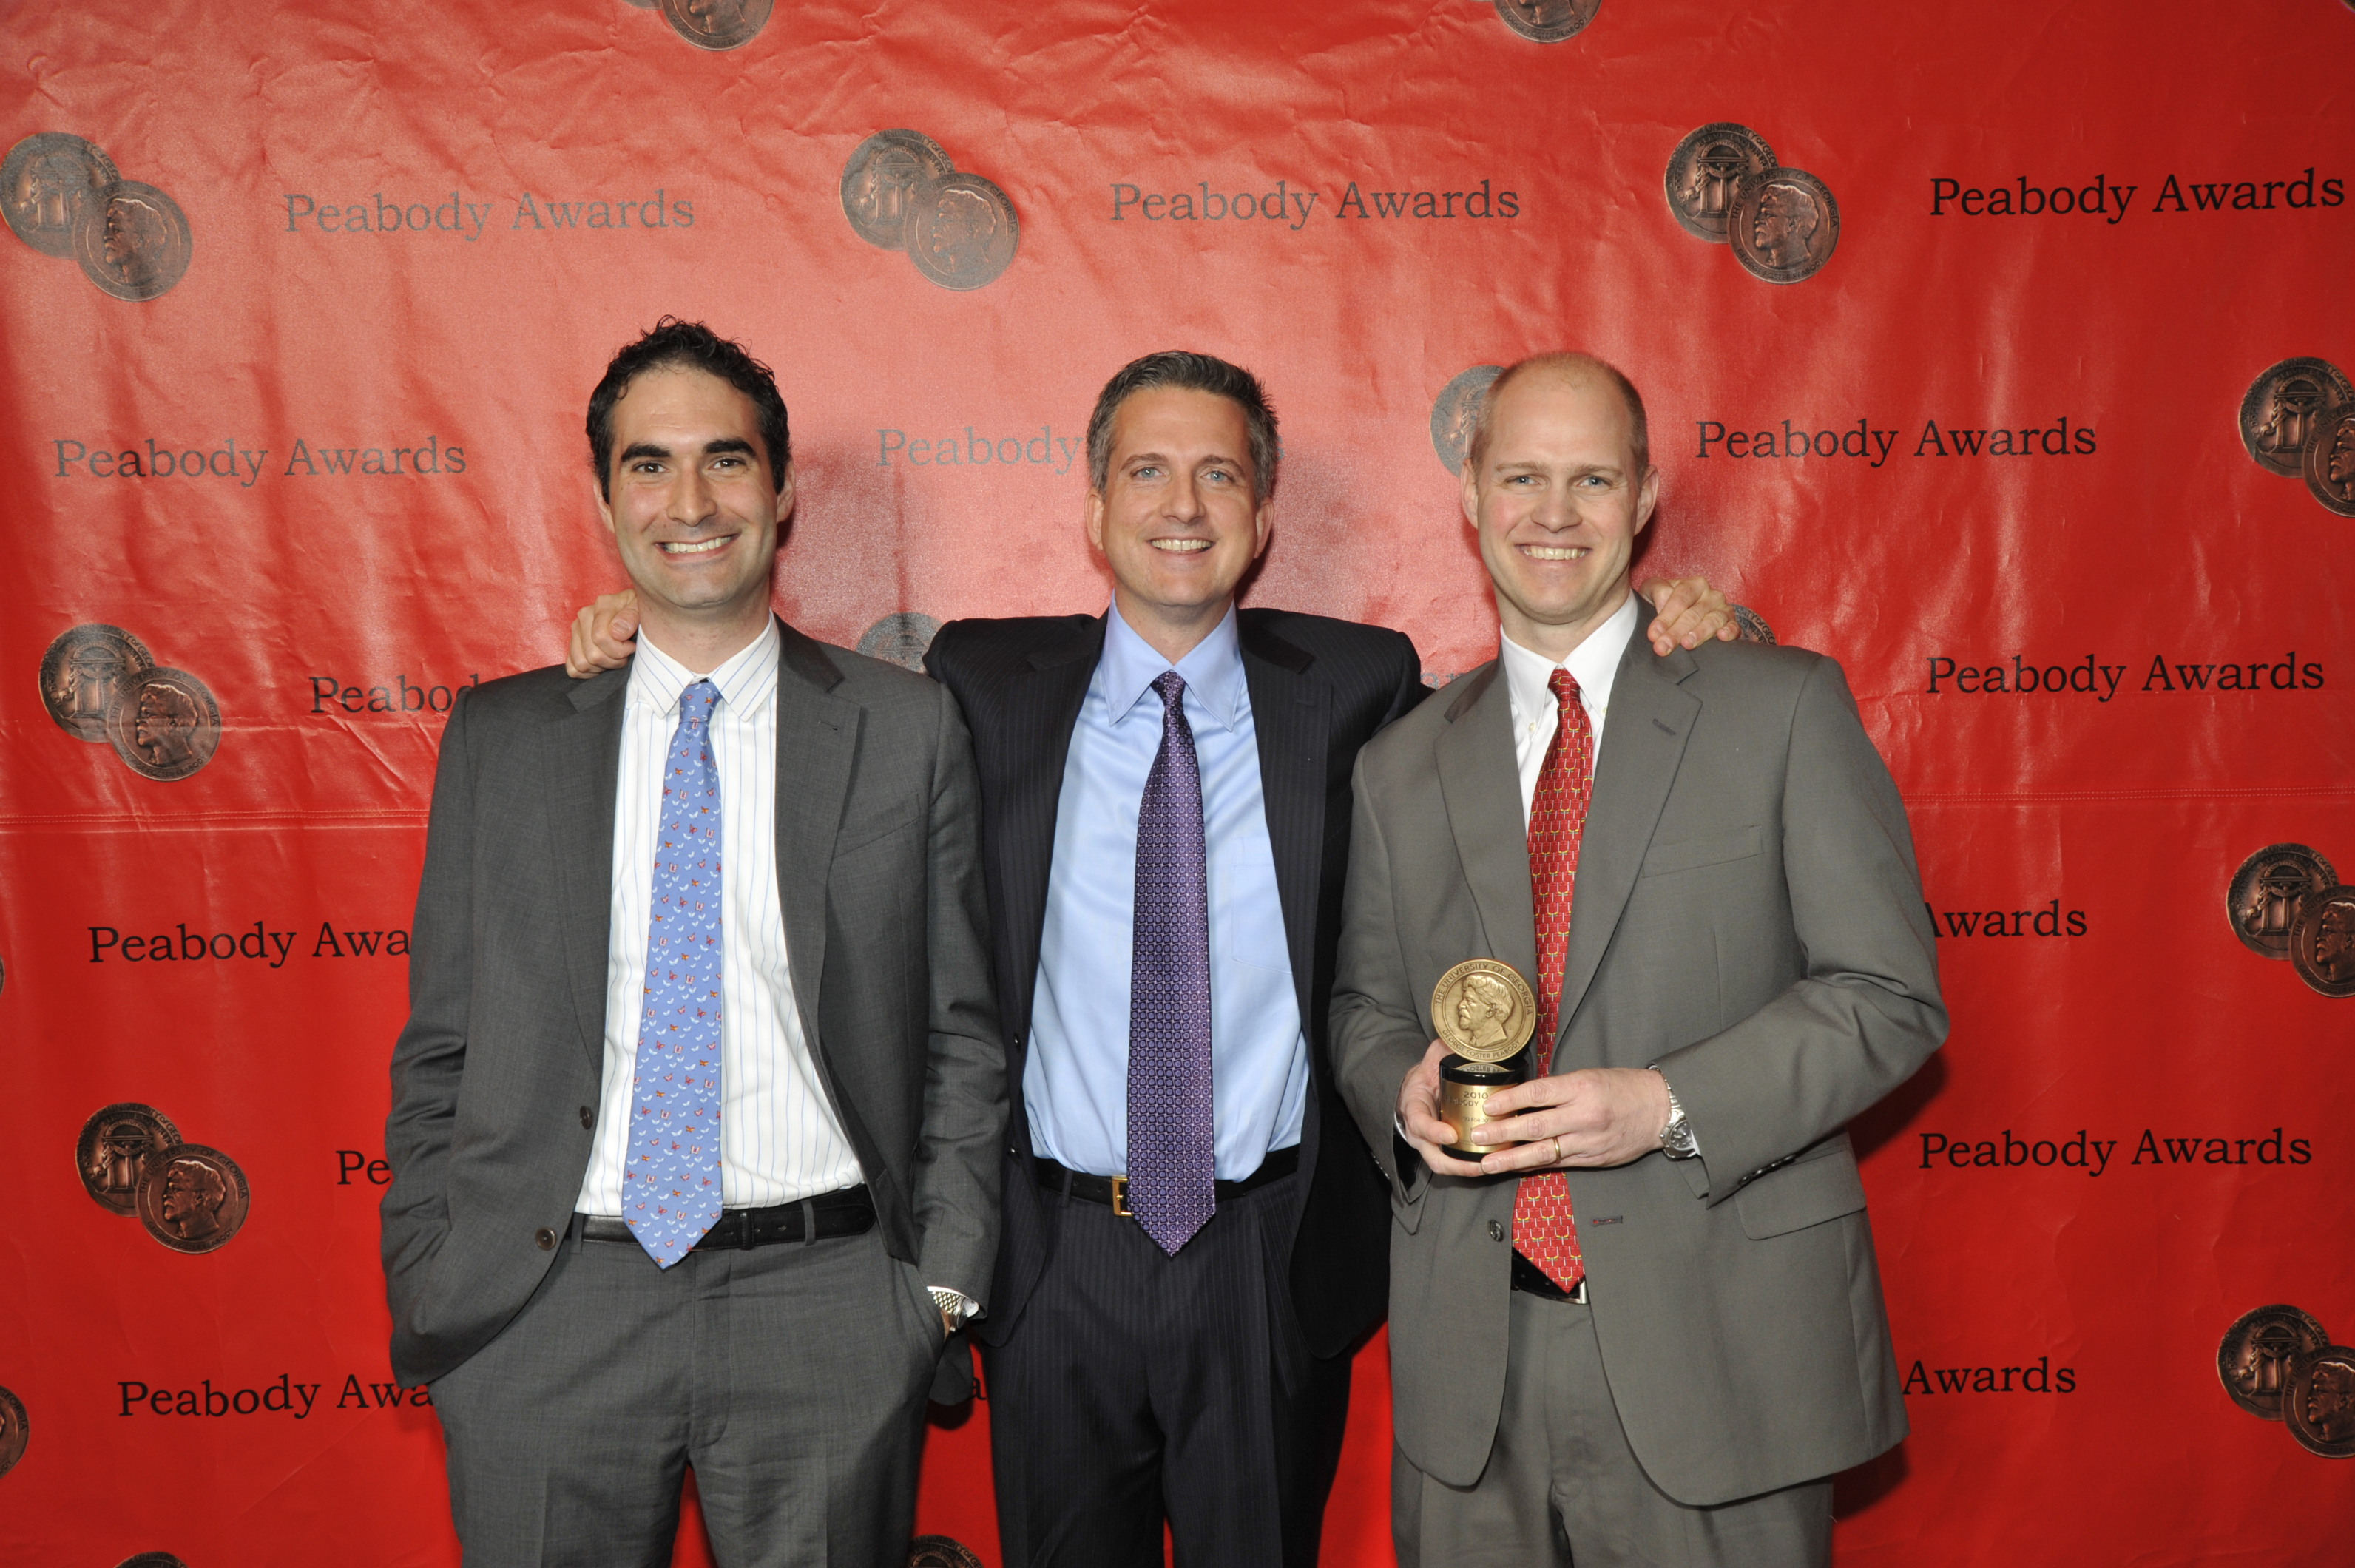 File:Connor Schell, Bill Simmons and John Dahl, May 23, 2011.jpg